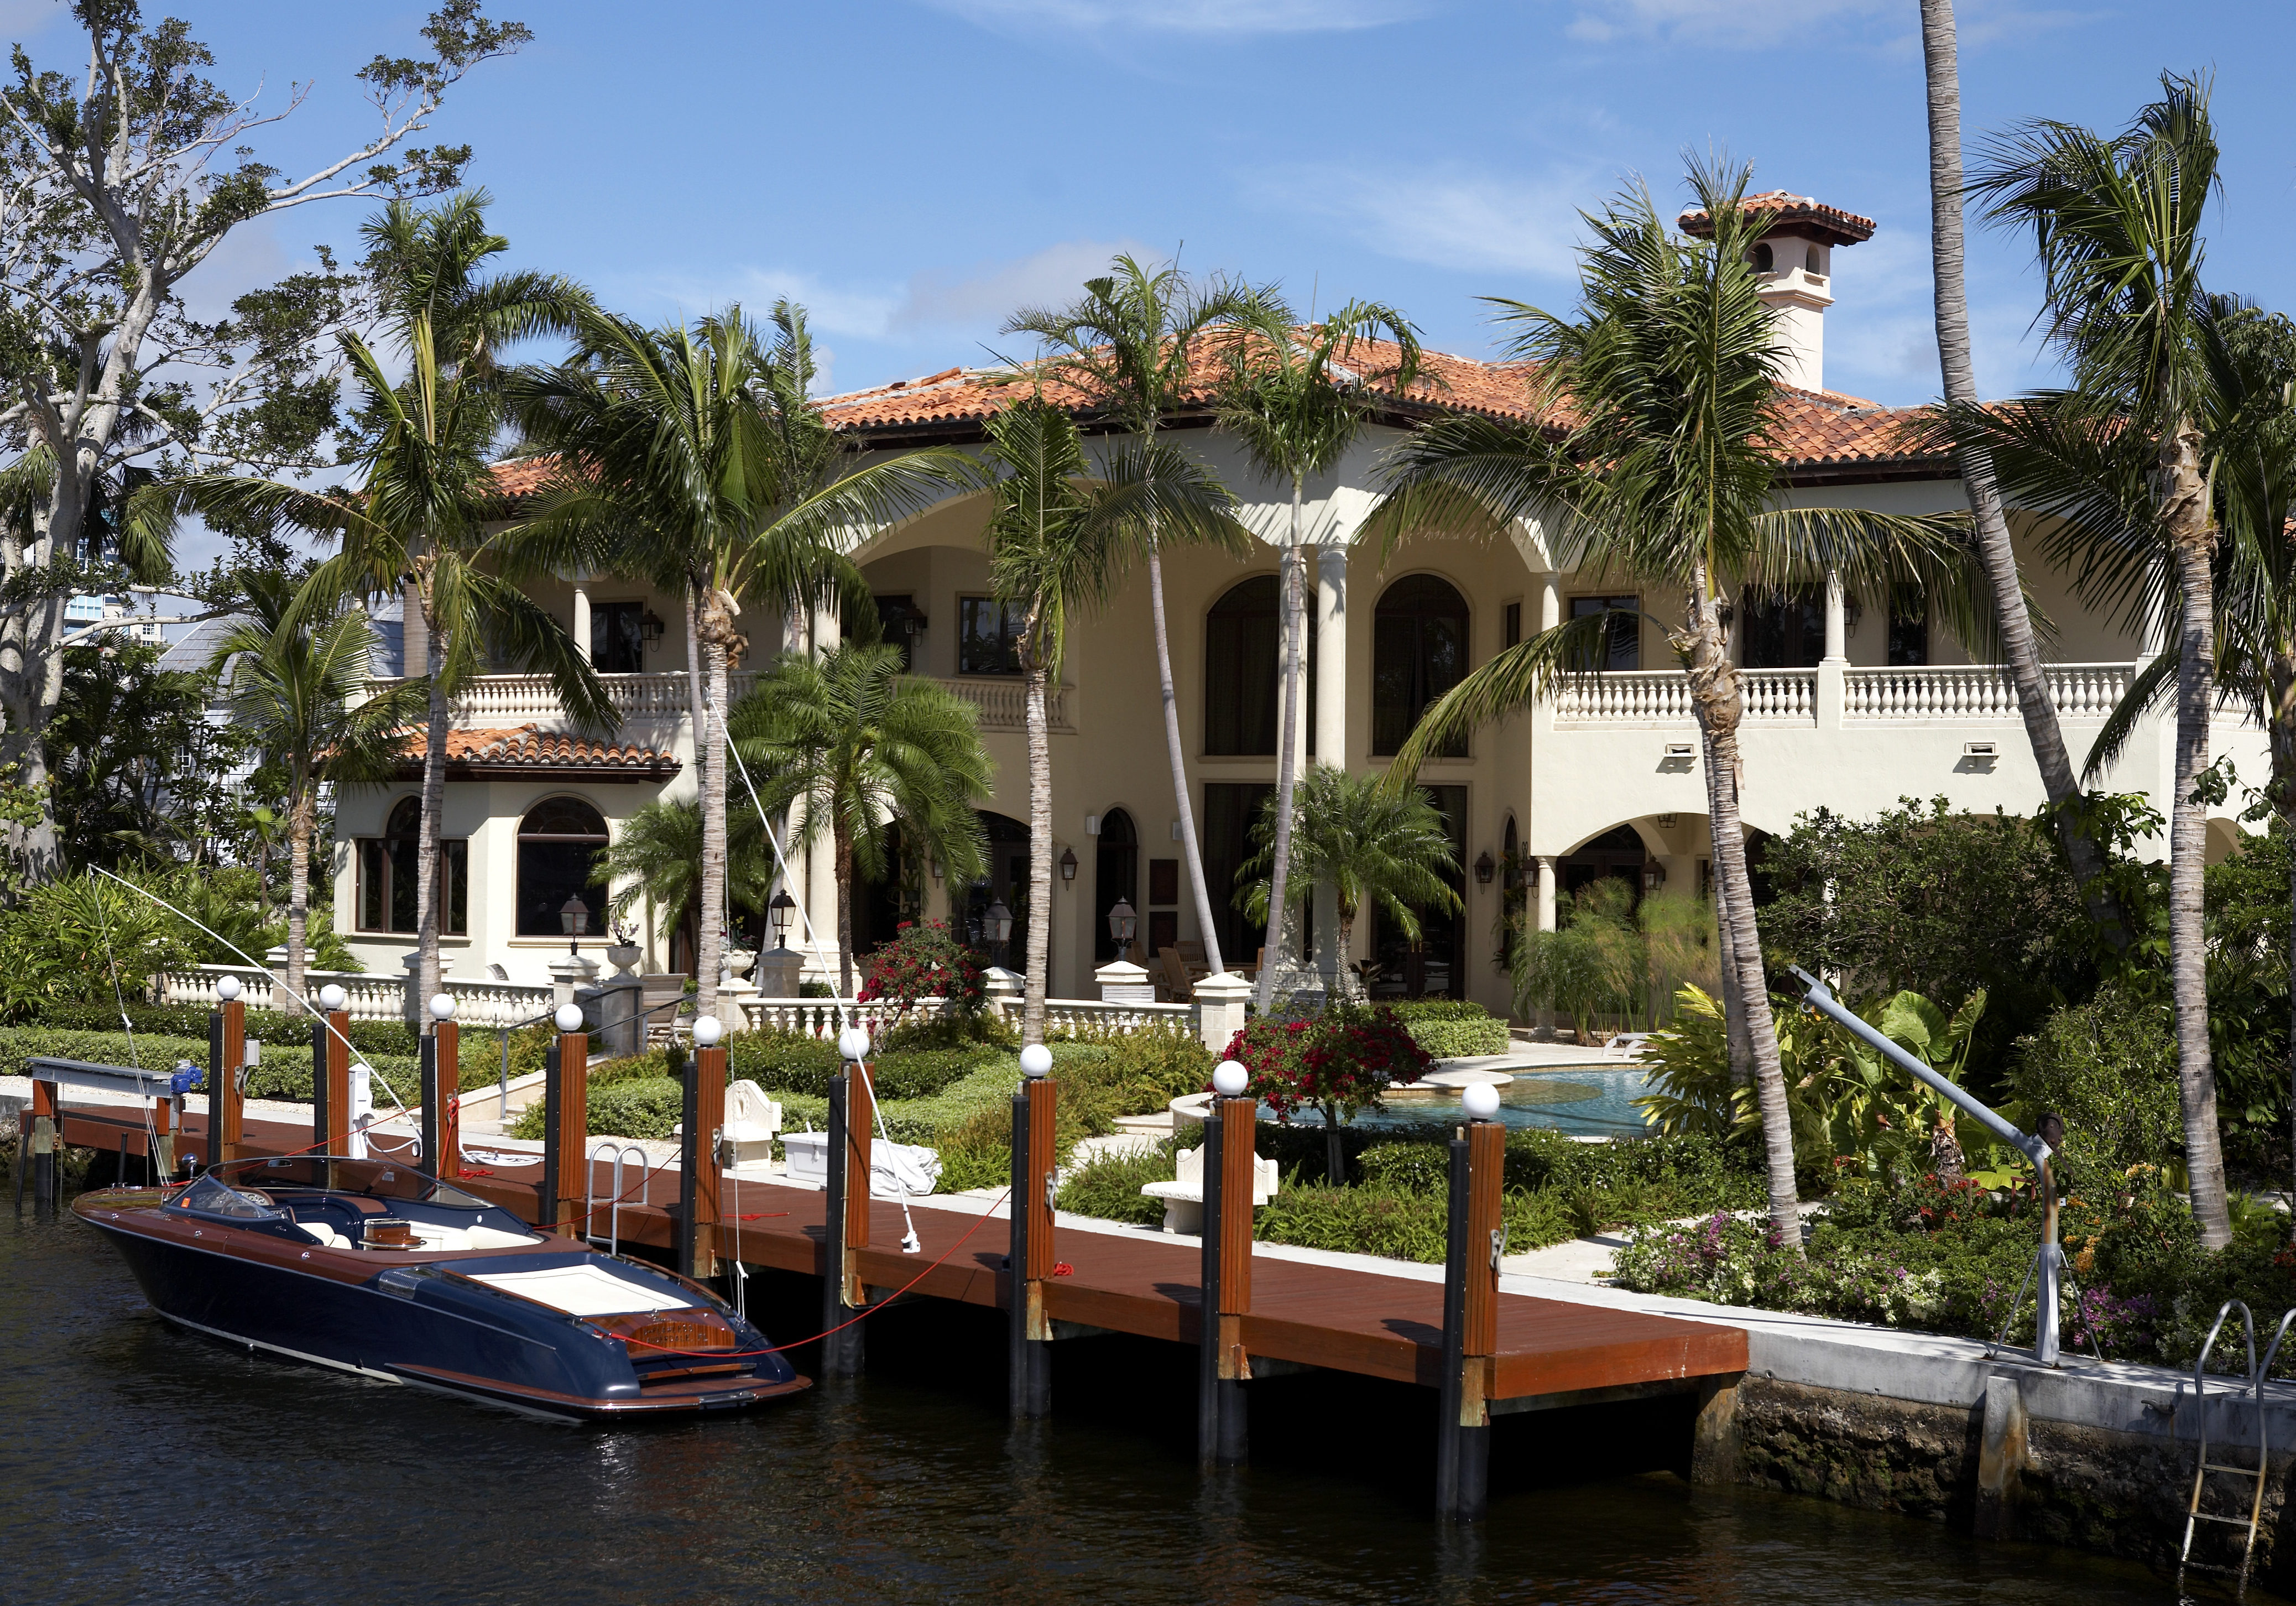 Luxury house on millionaires row new river, known as the isles fort Lauderdale florida America usa